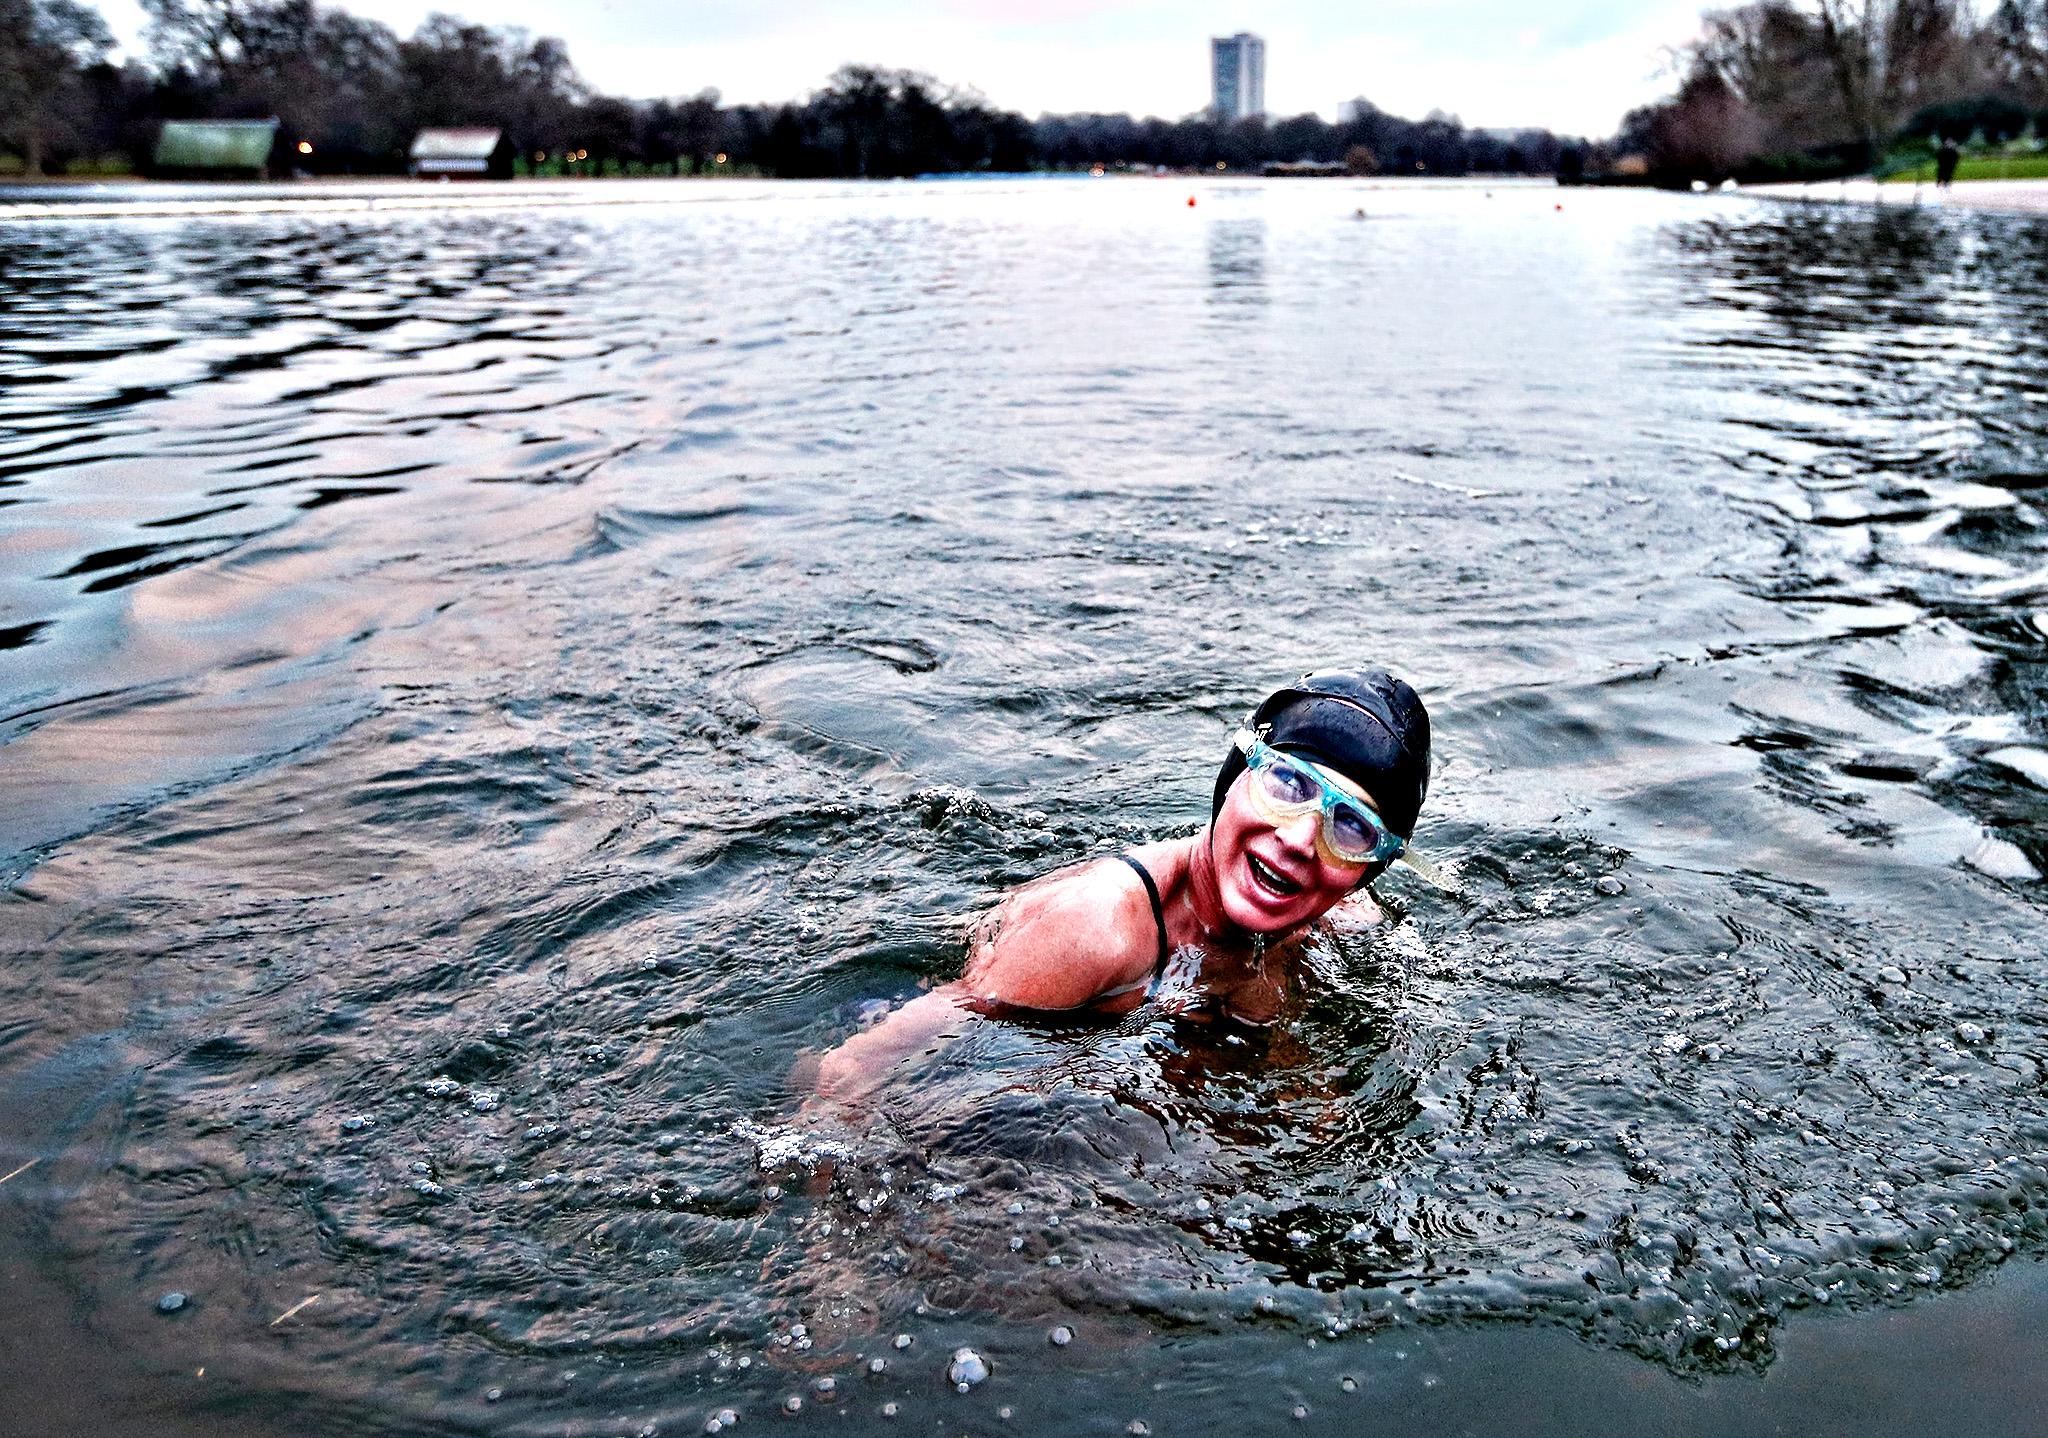 A member of the Serpentine Swimming Club enjoys an early morning swim in Serpentine Lake in Hyde Park on Monday in London, England